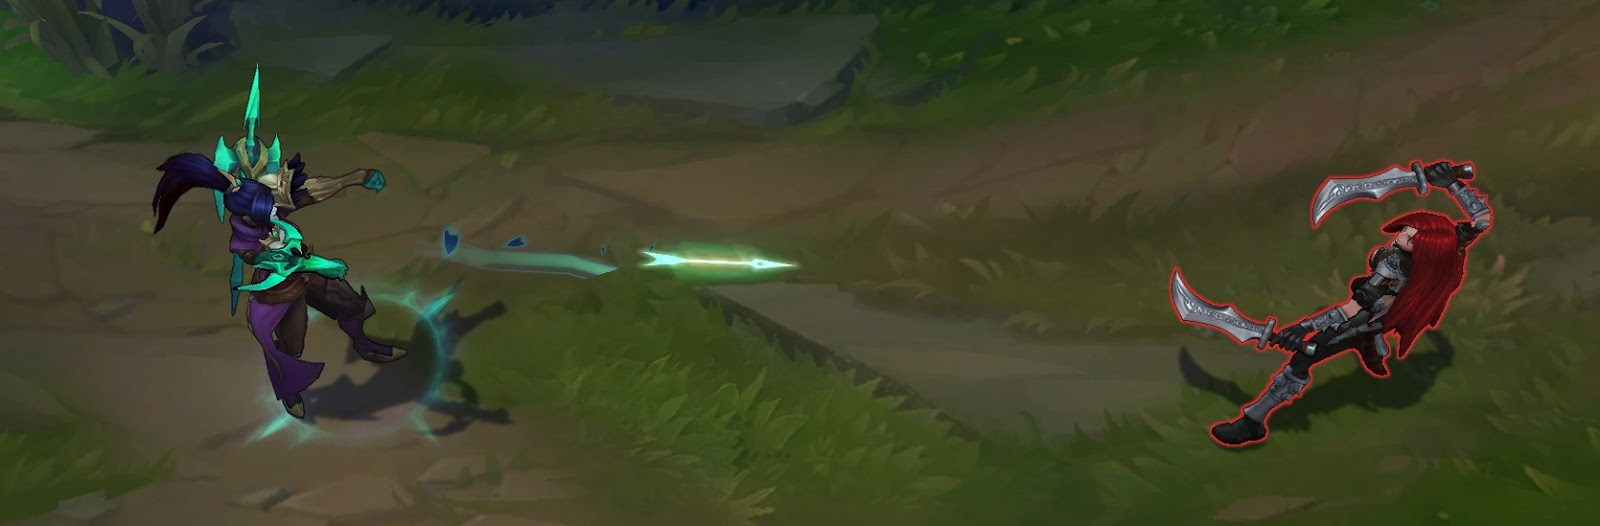 160616 08;08;36 Surrender at 20_ 6_14 PBE Update_ Soulstealer 005